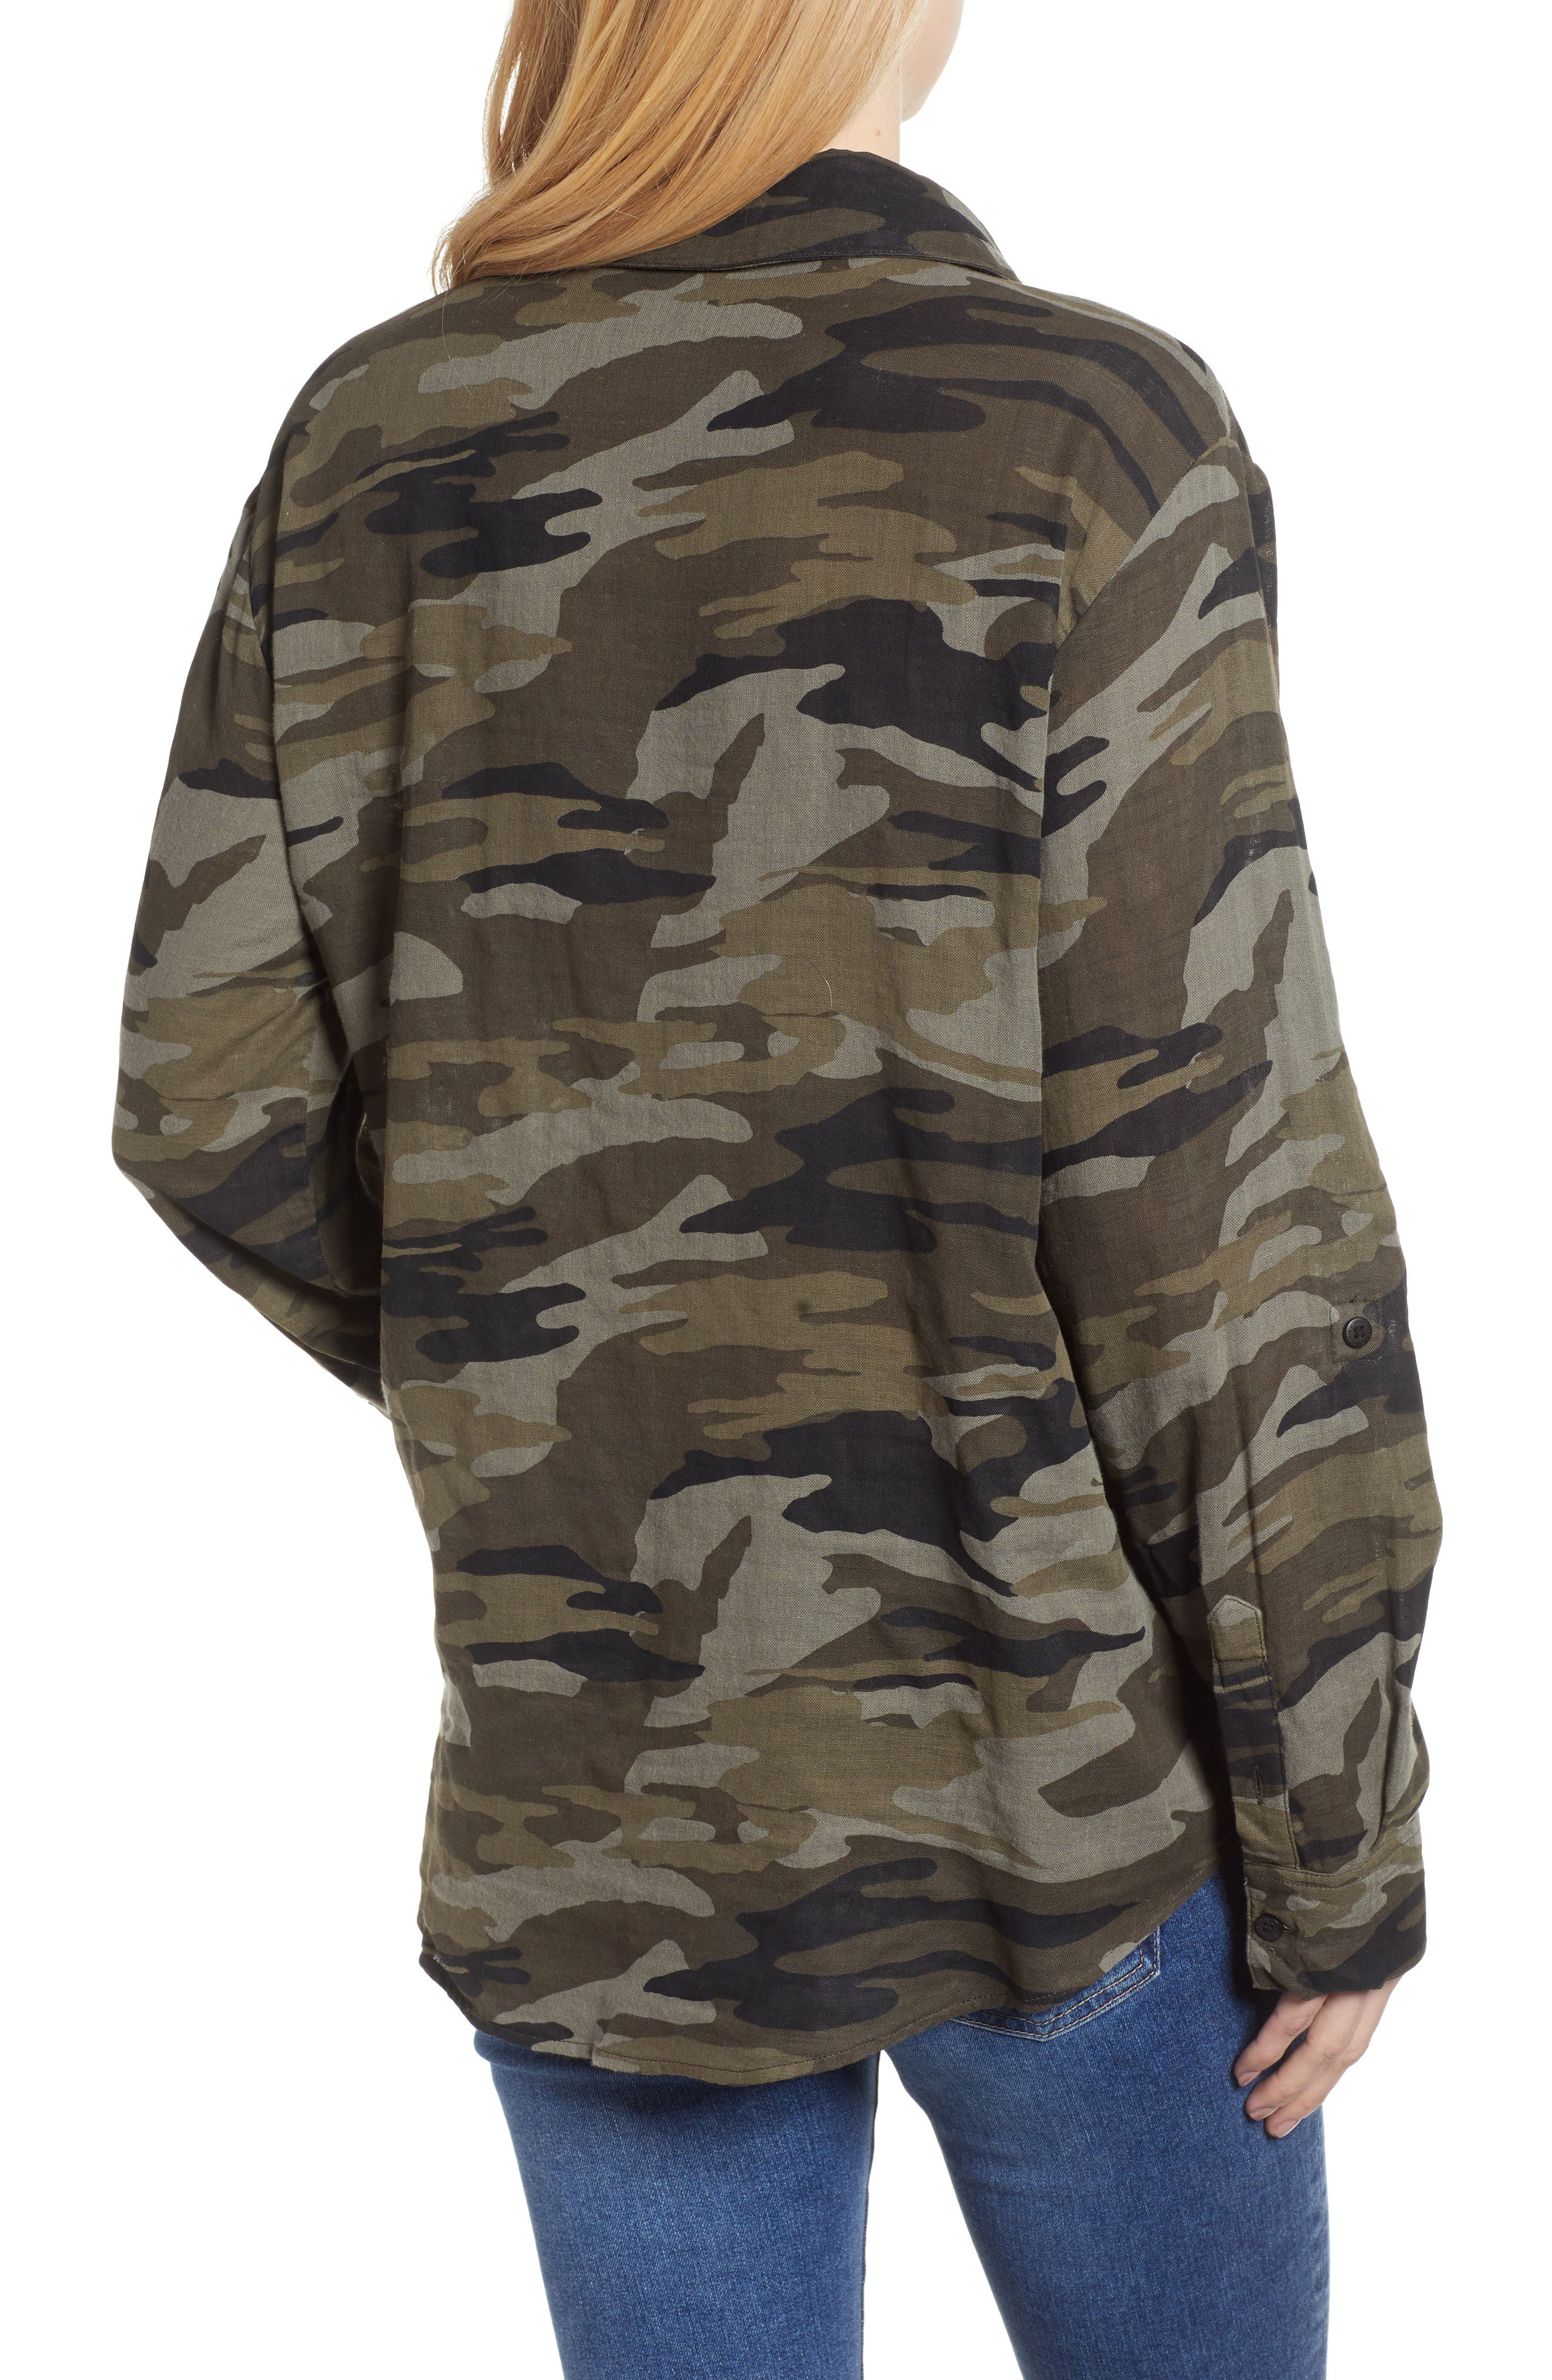 Steady Boyfriend Camo Shirt,                             Alternate thumbnail 2, color,                             GARDEN CAMO